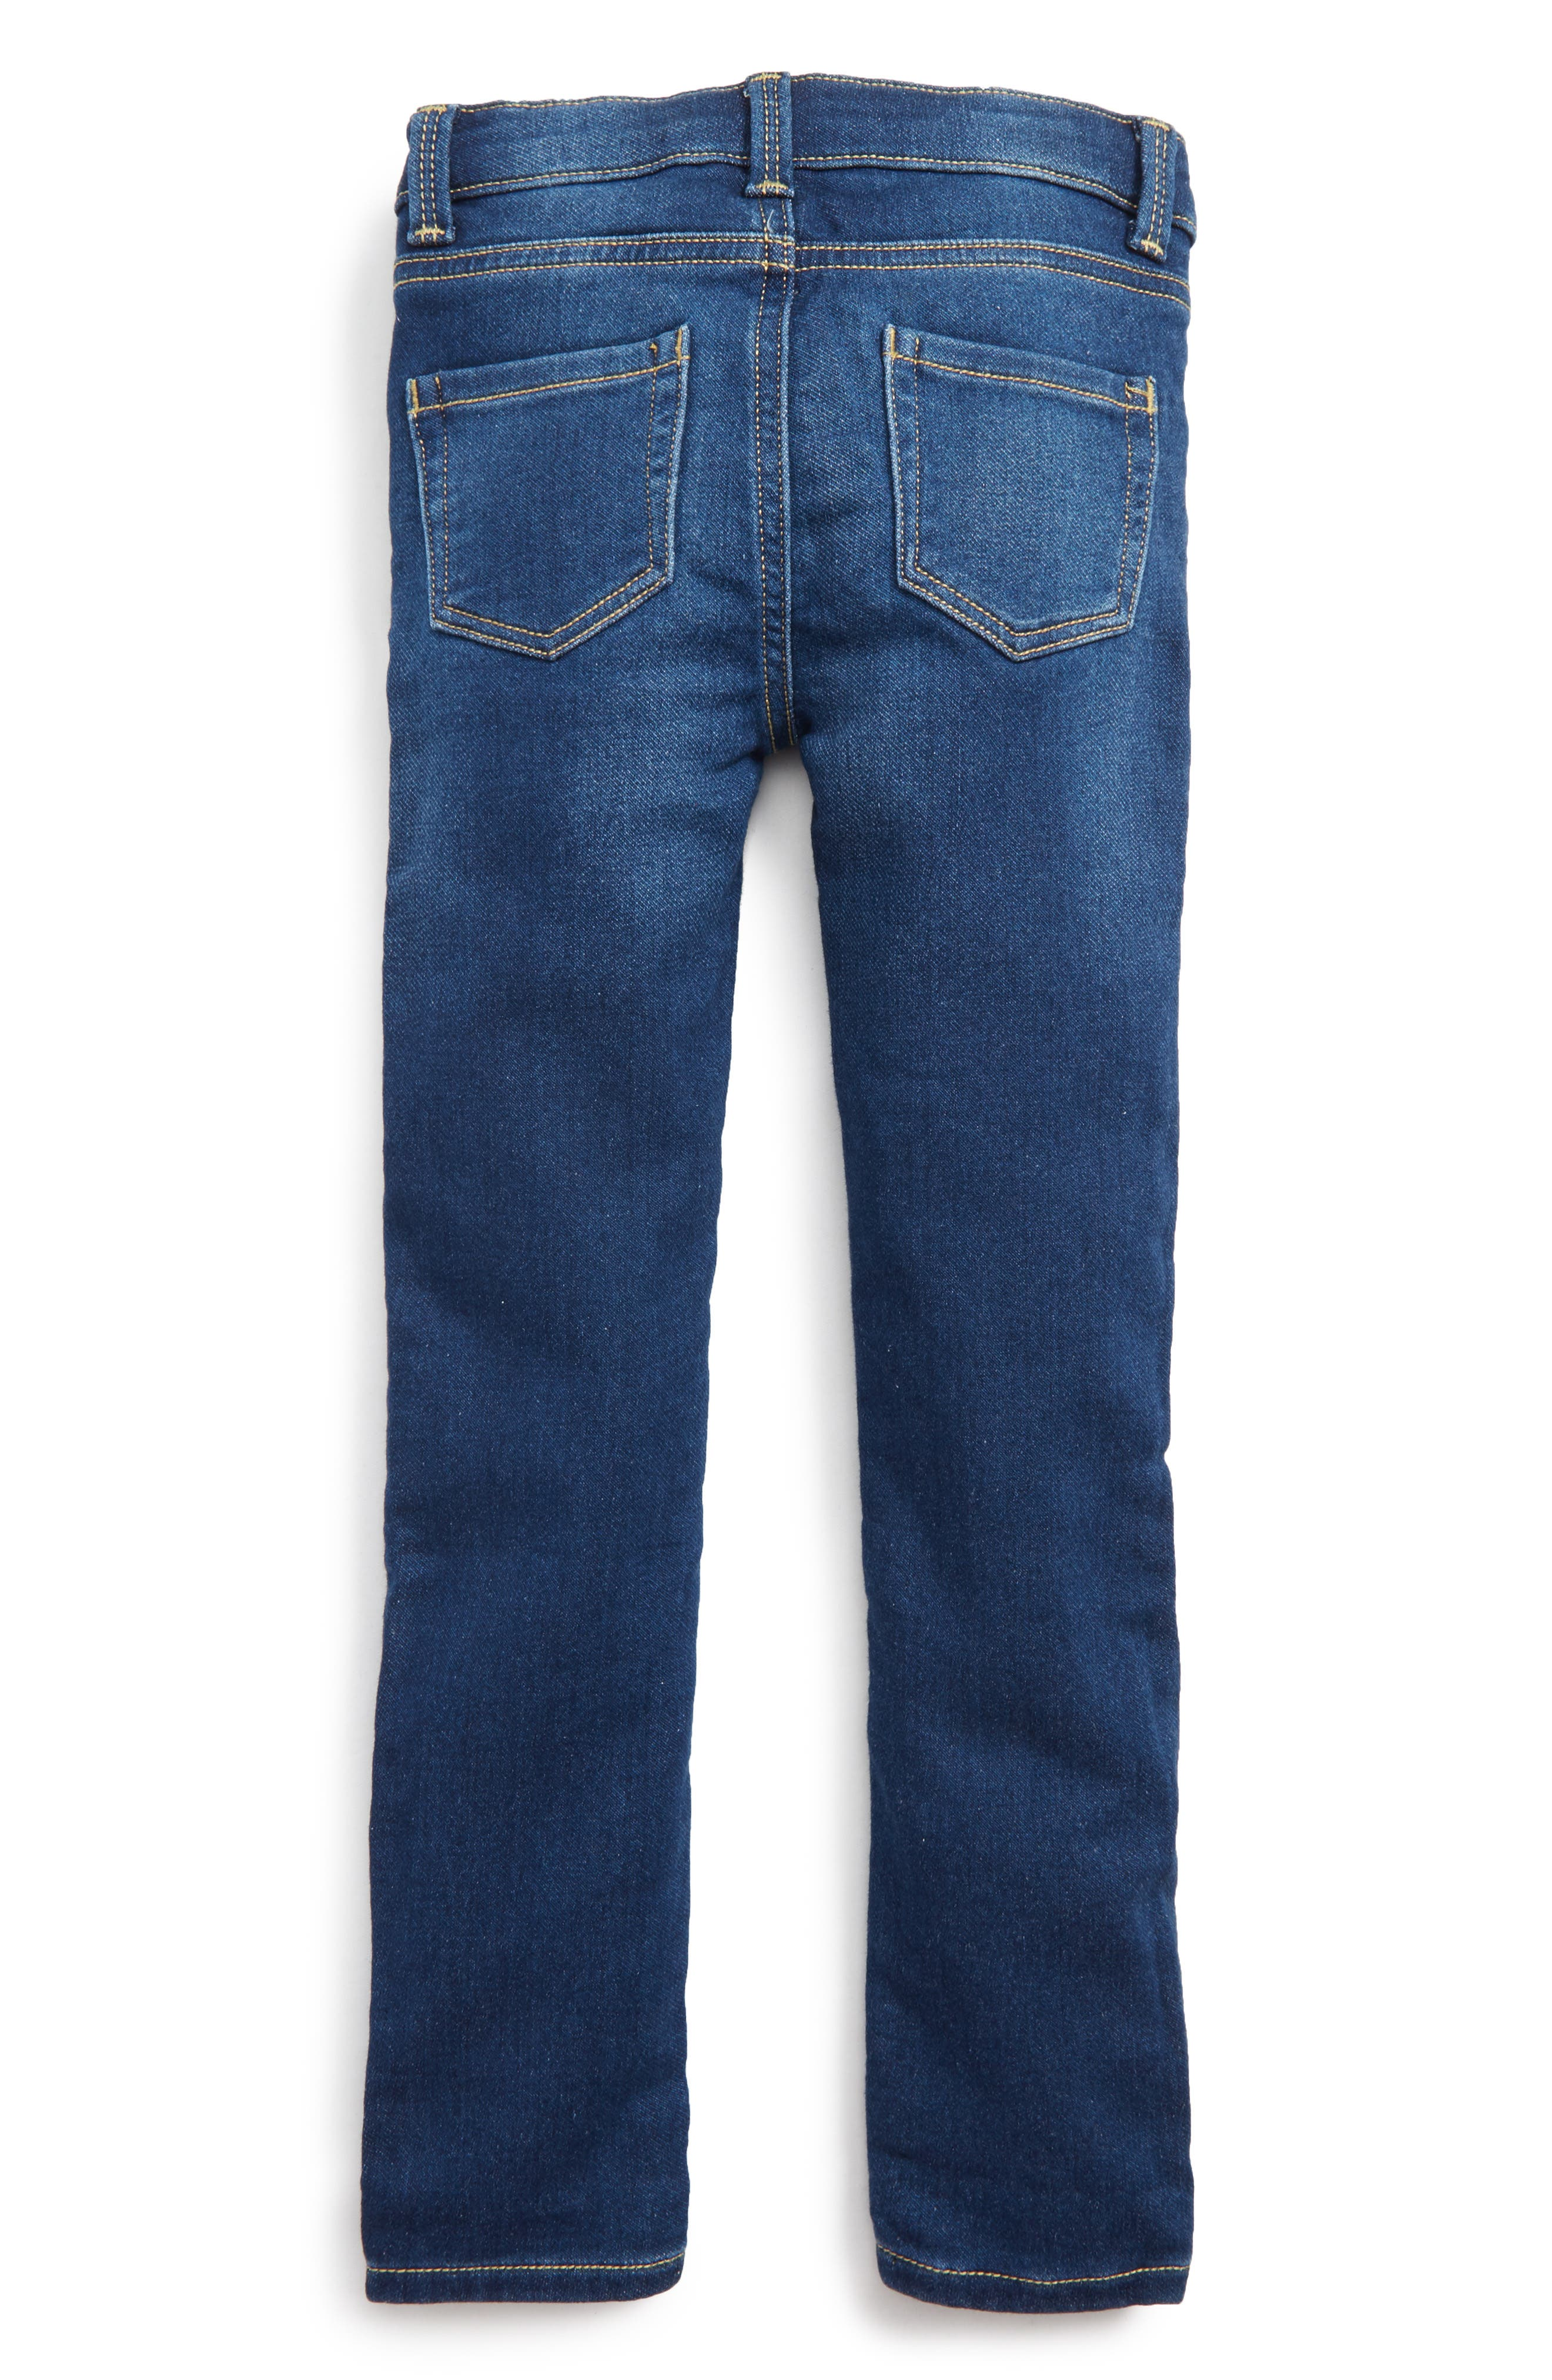 Taylor Skinny Jeans,                             Alternate thumbnail 2, color,                             Med Authentic